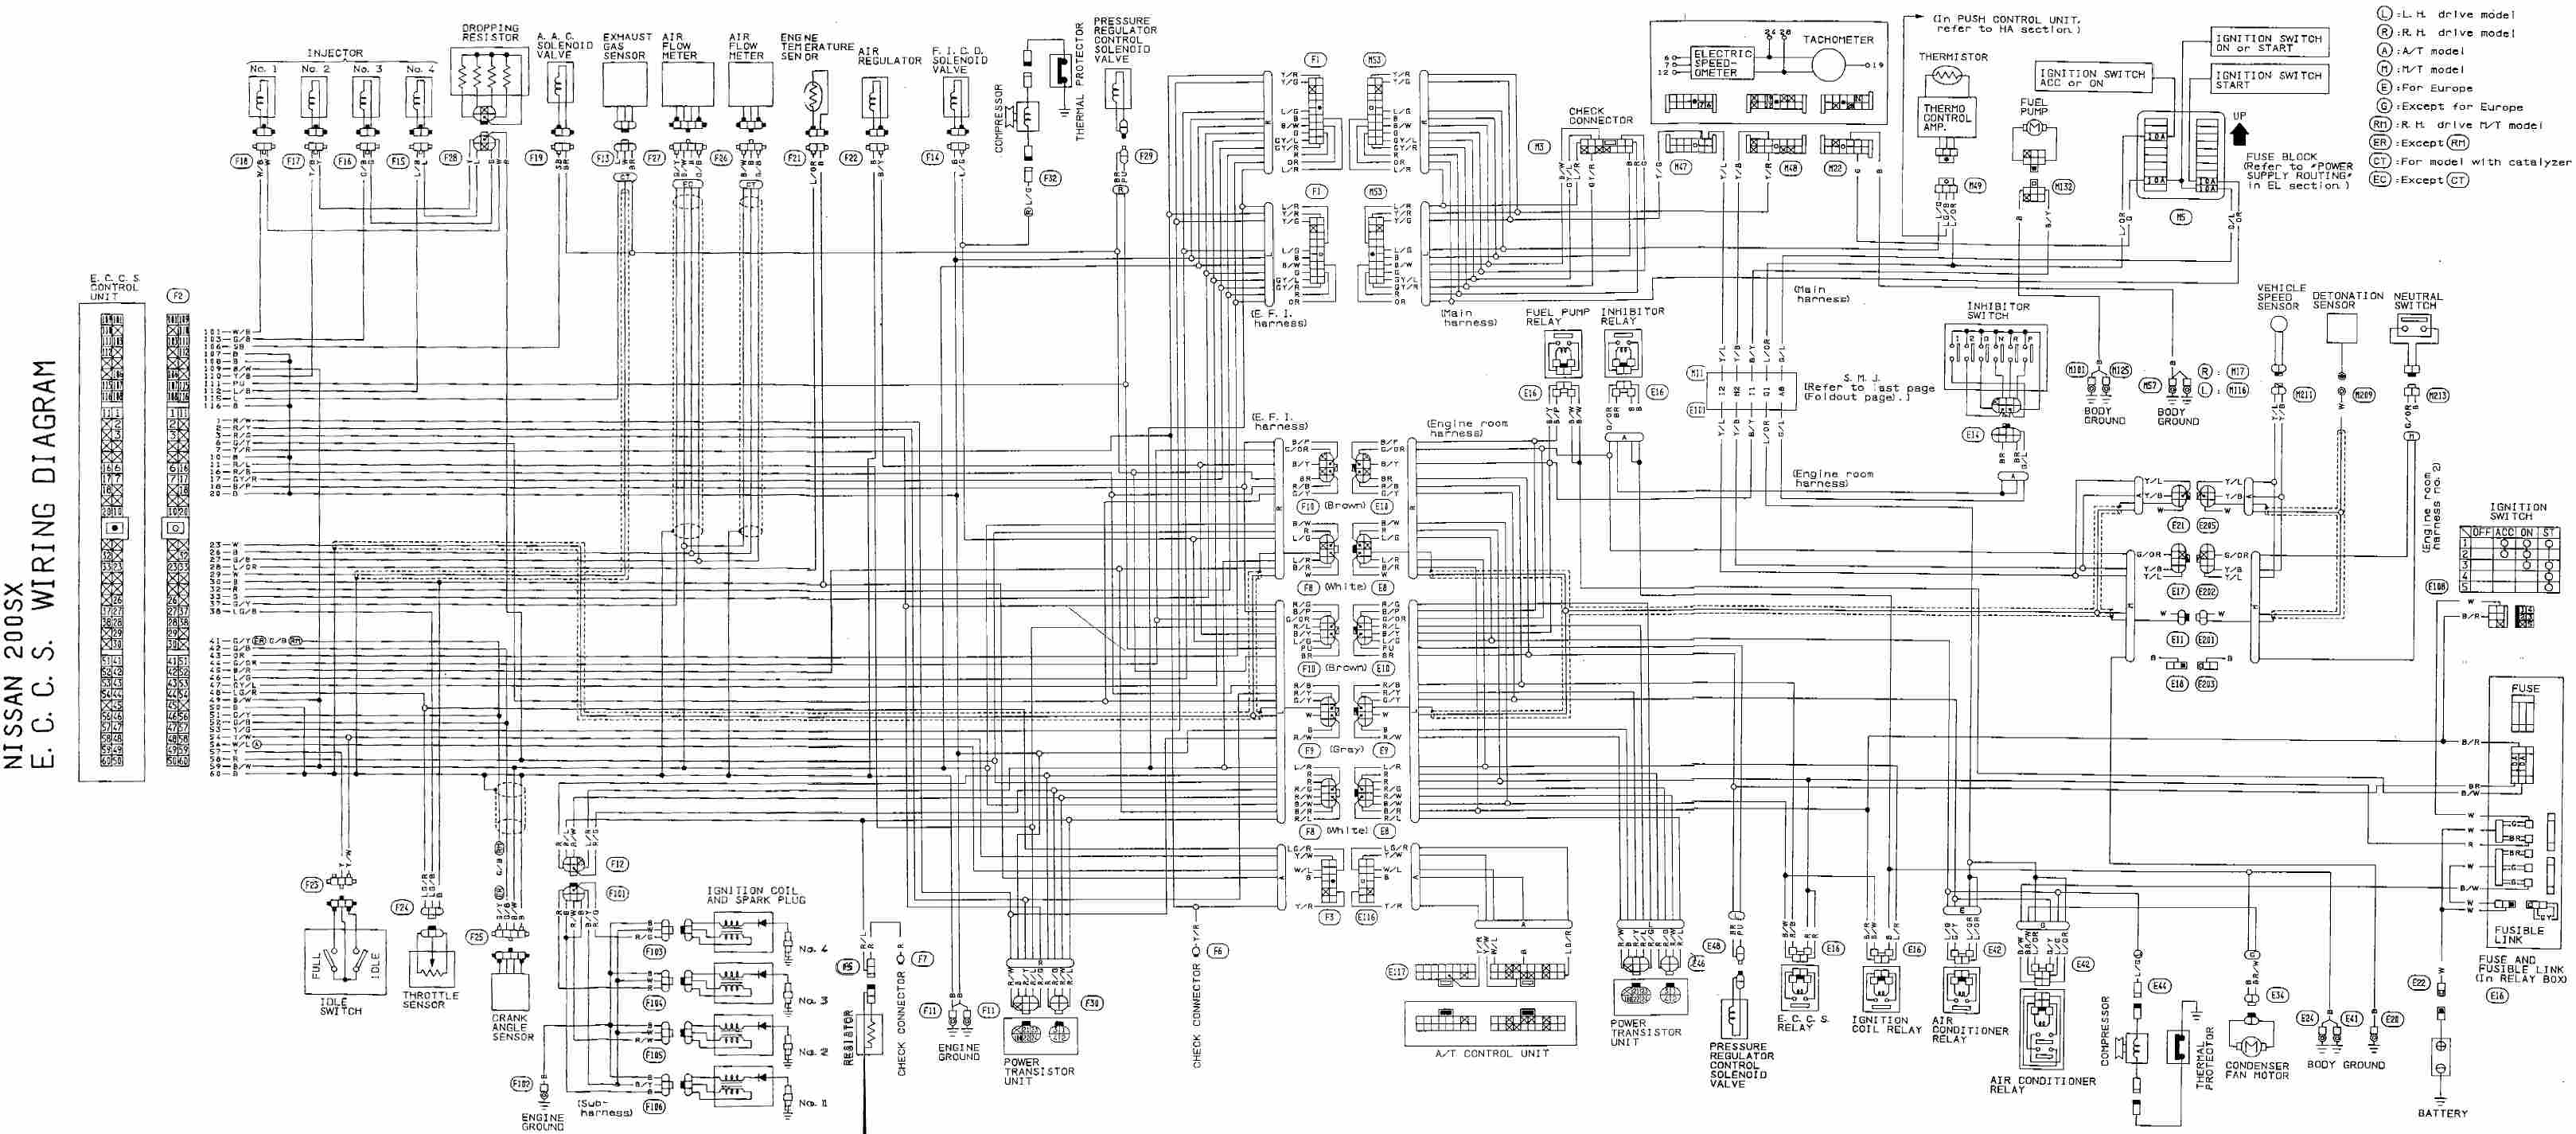 complete eccs wiring diagram of nissan 200x?t\=1508500919 300zx wiring diagram 300zx engine wiring diagram \u2022 wiring diagrams Auto Wiring Diagram Library at crackthecode.co